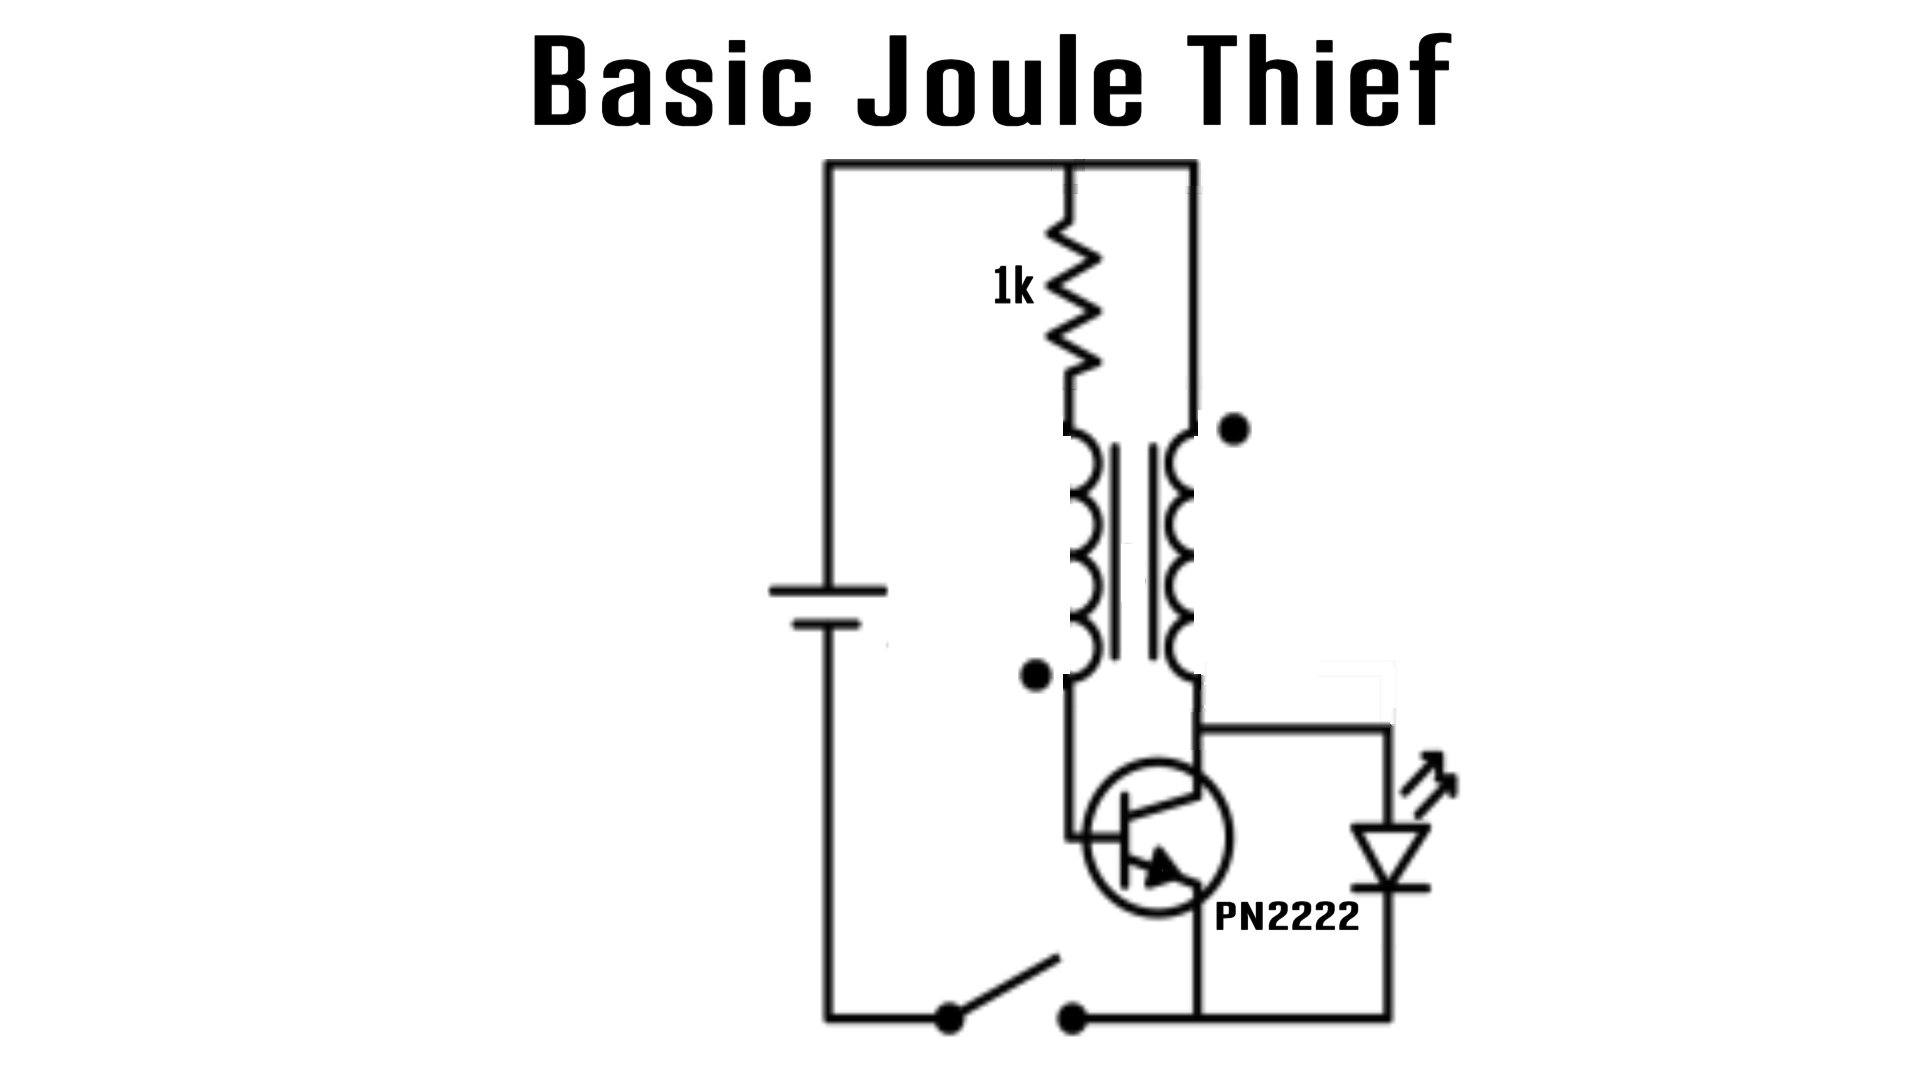 wireless electricity transmitter circuit diagram basically a joule